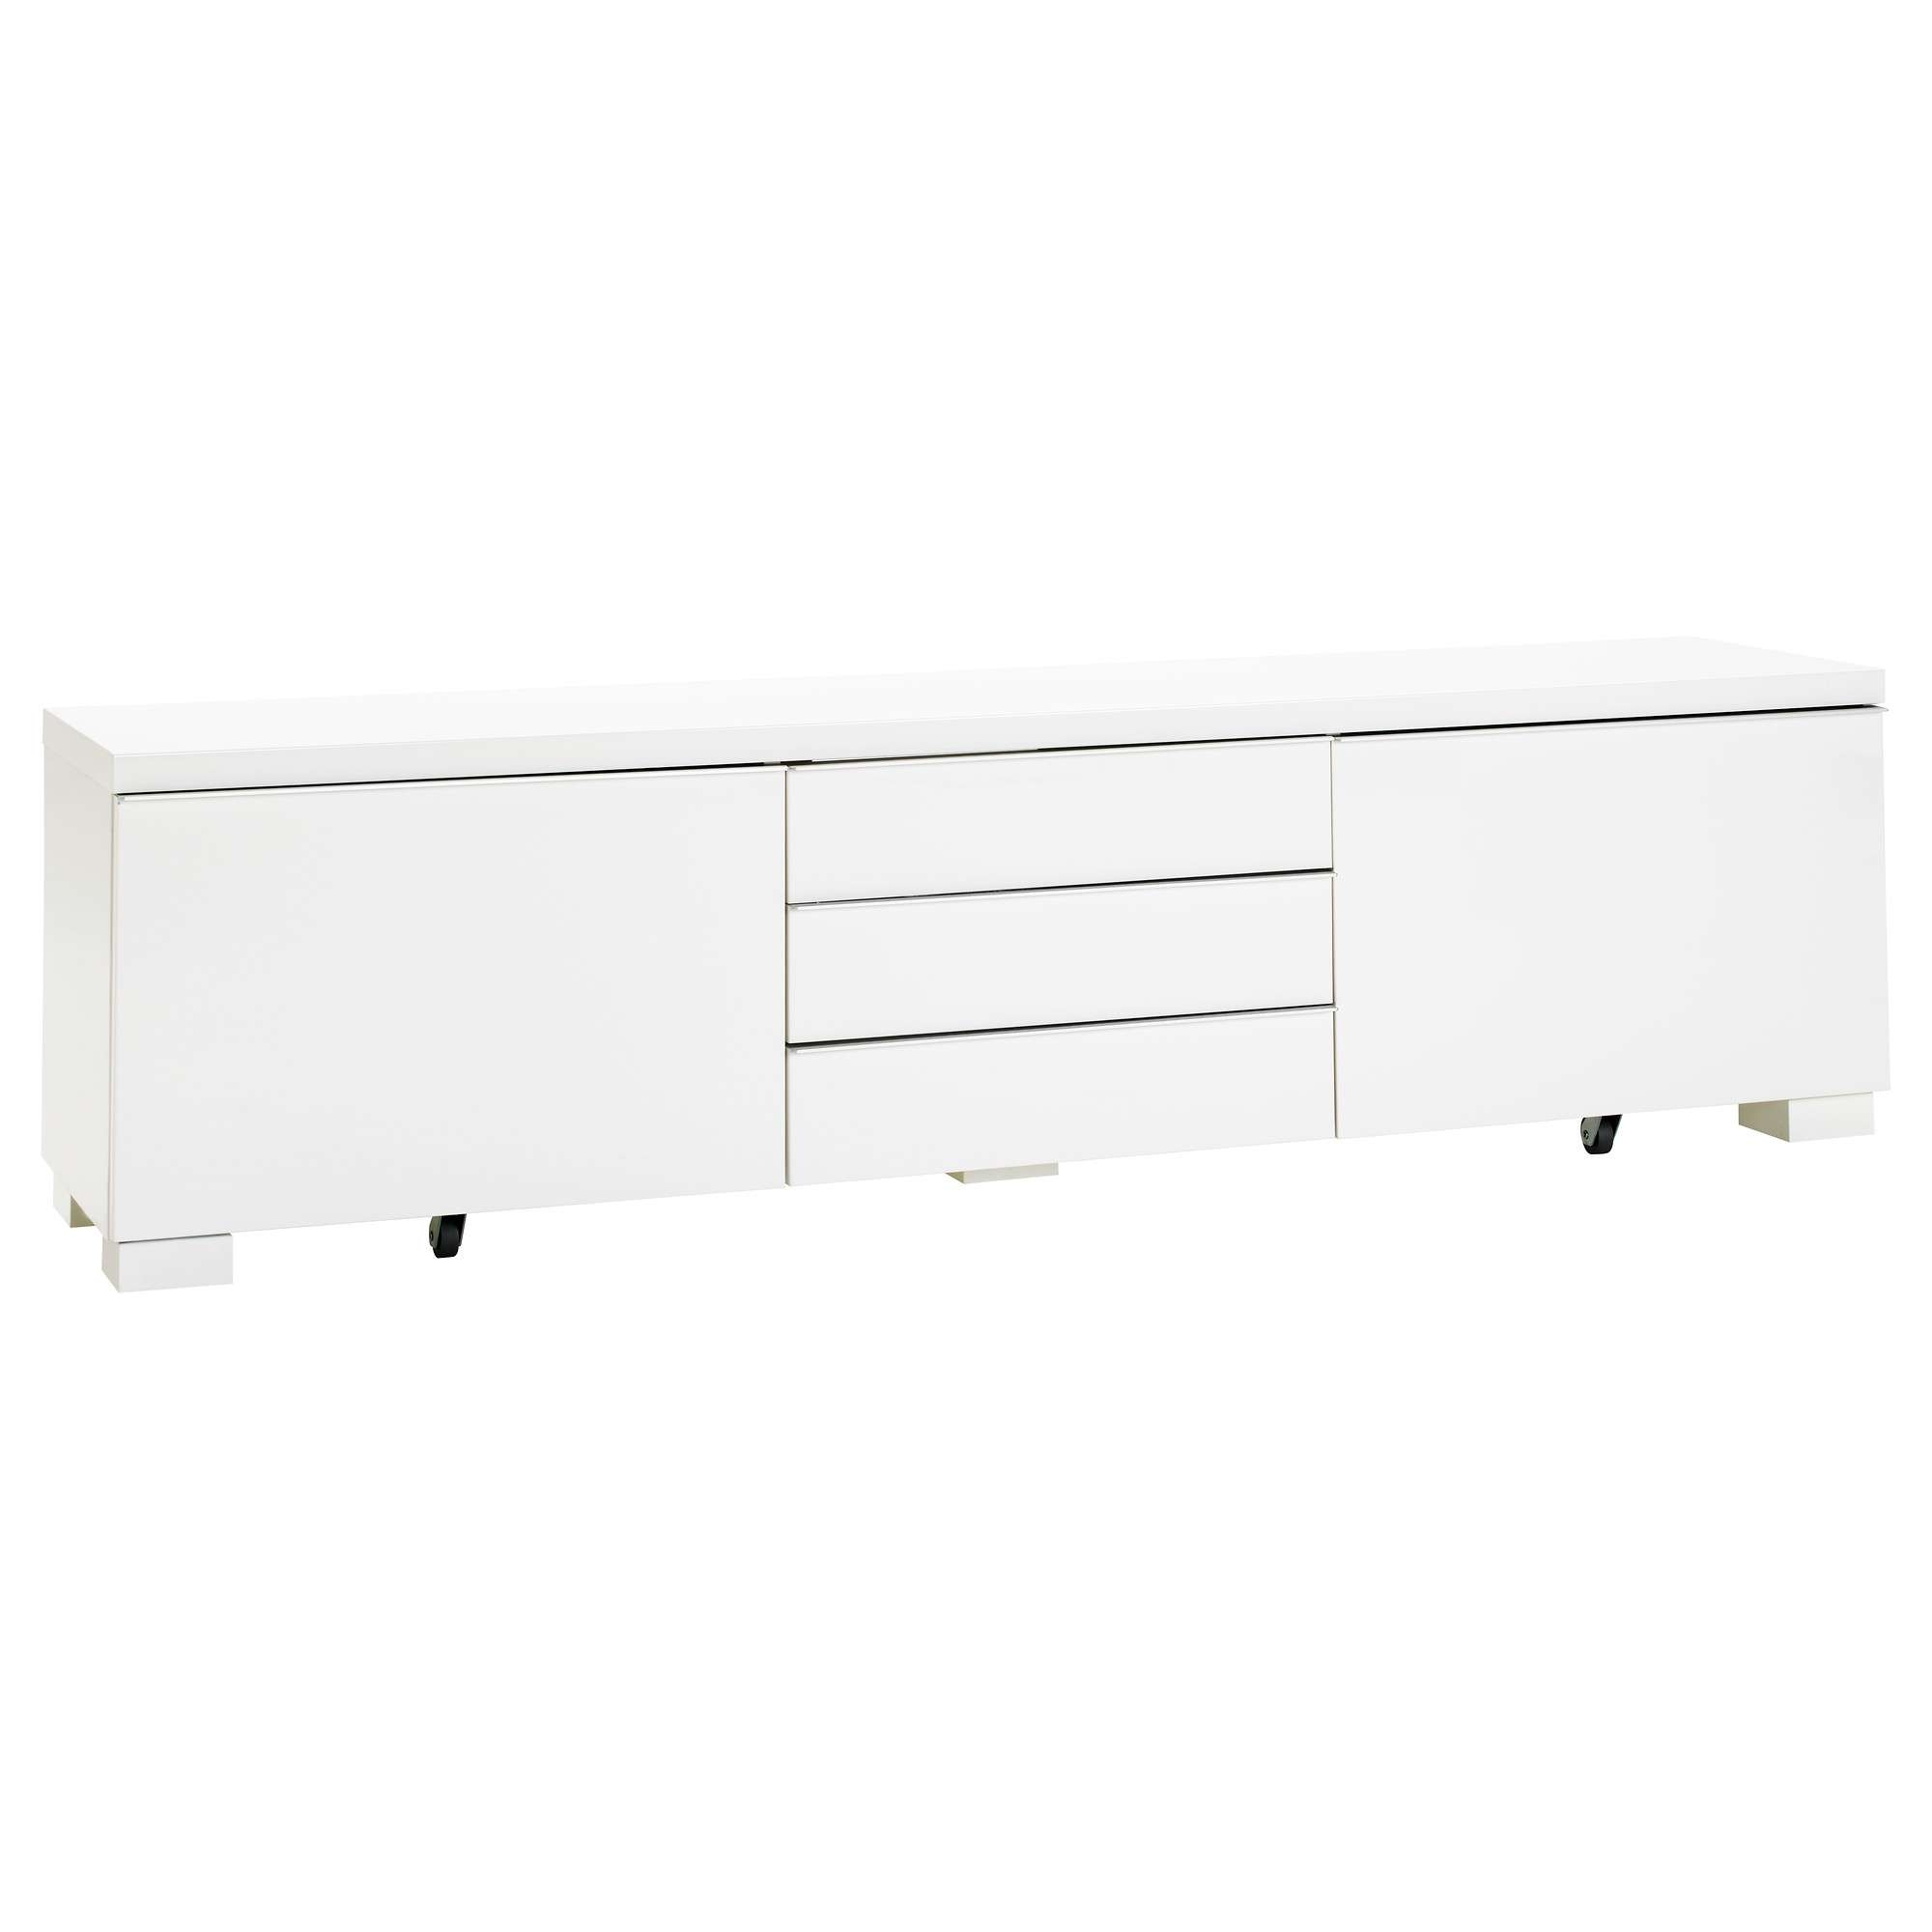 Bestå Burs Tv Bench High Gloss White 180x41 Cm – Ikea Inside White Gloss Ikea Sideboards (View 6 of 20)